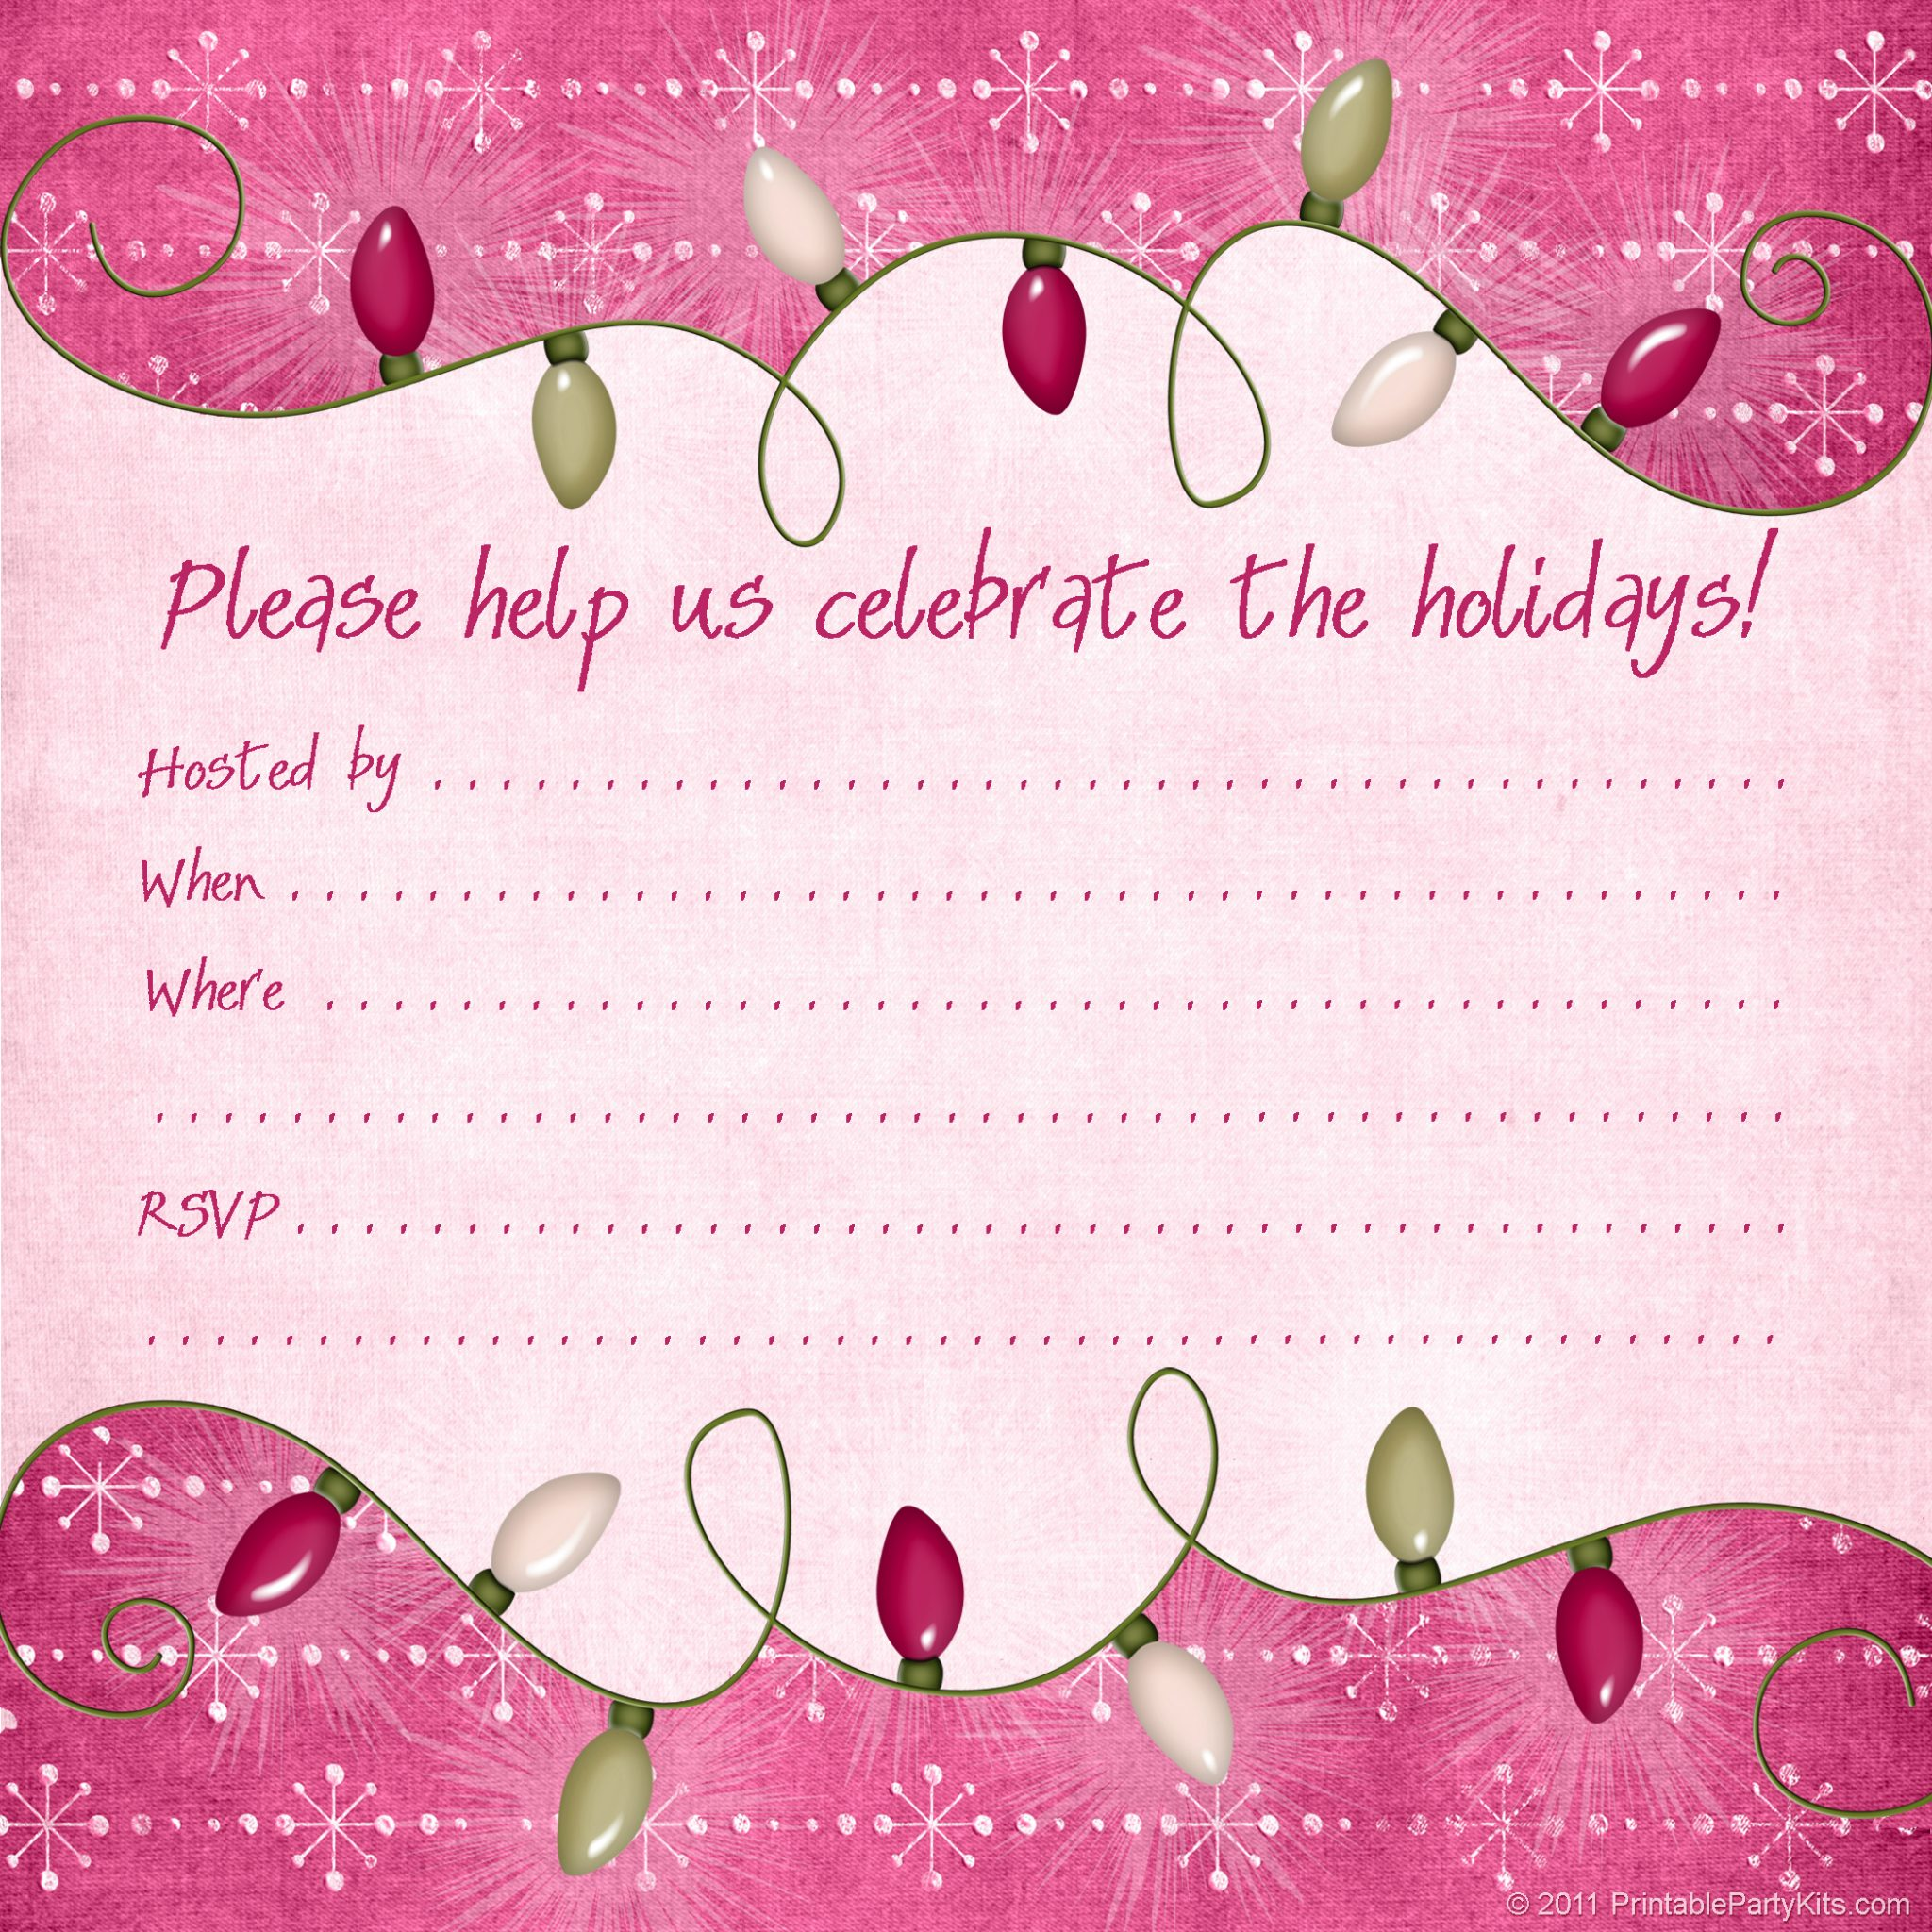 Free Printable Christmas and Holiday Party Invitations: printablepartykits.com/category/winter